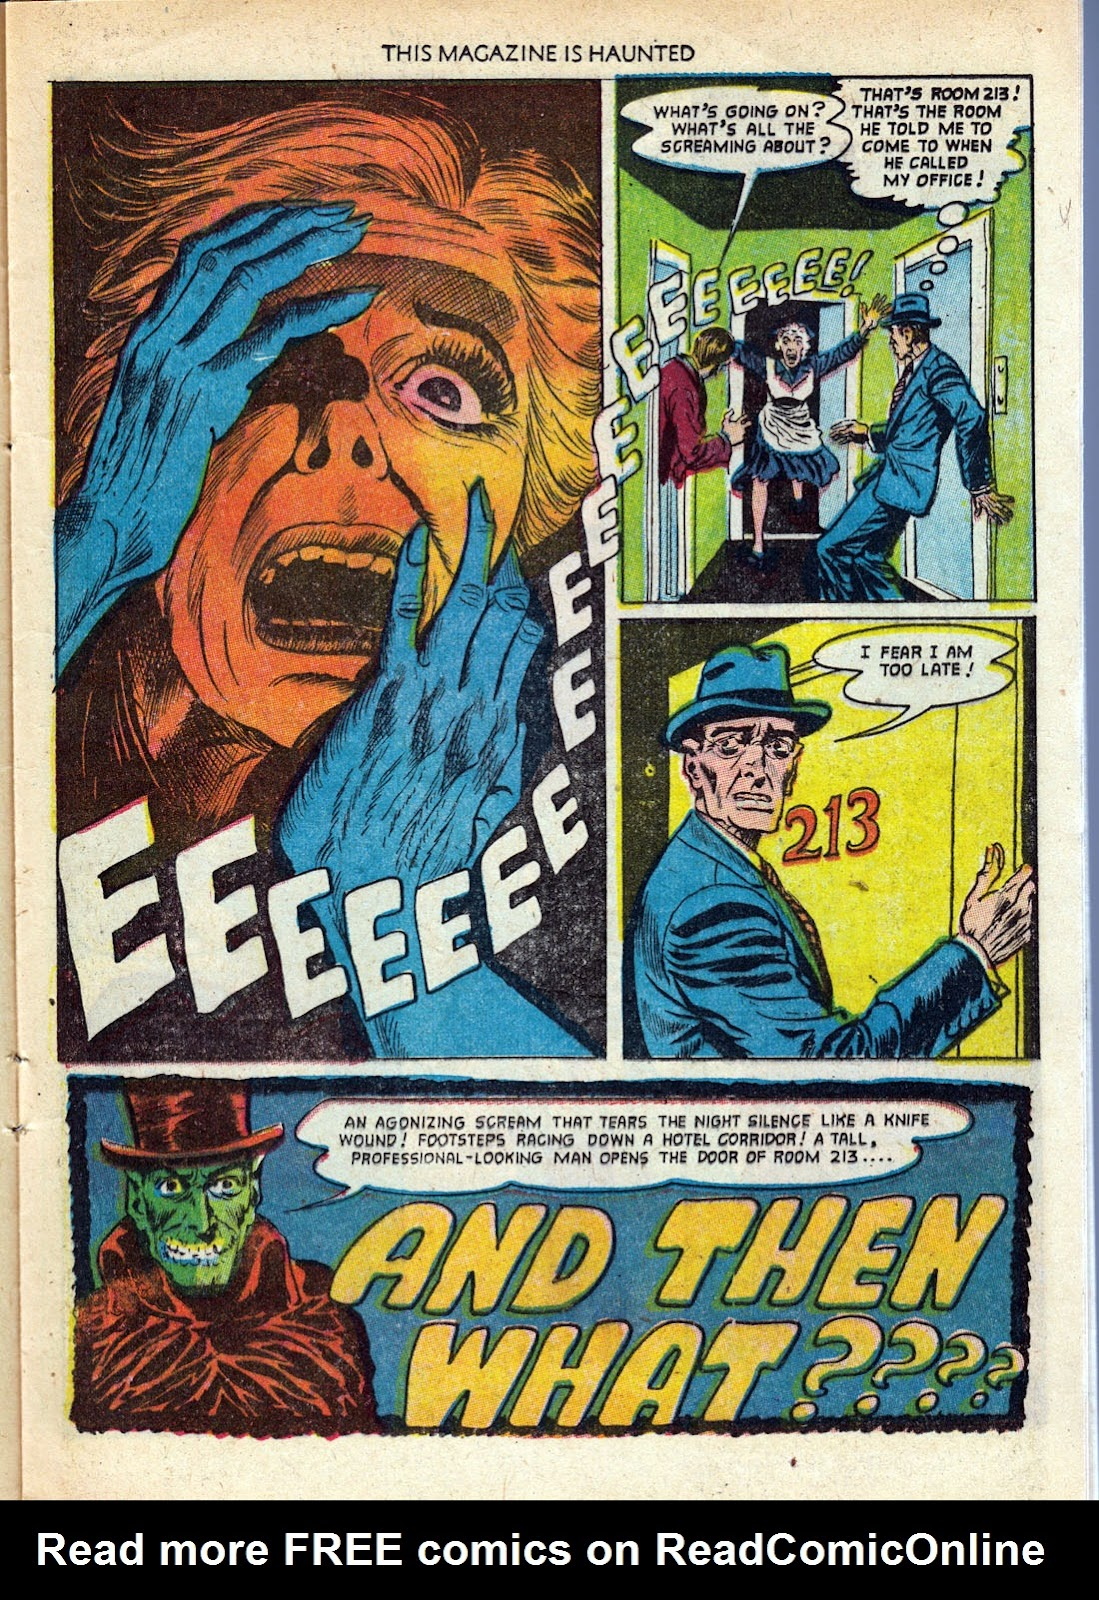 Read online This Magazine Is Haunted comic -  Issue #11 - 13